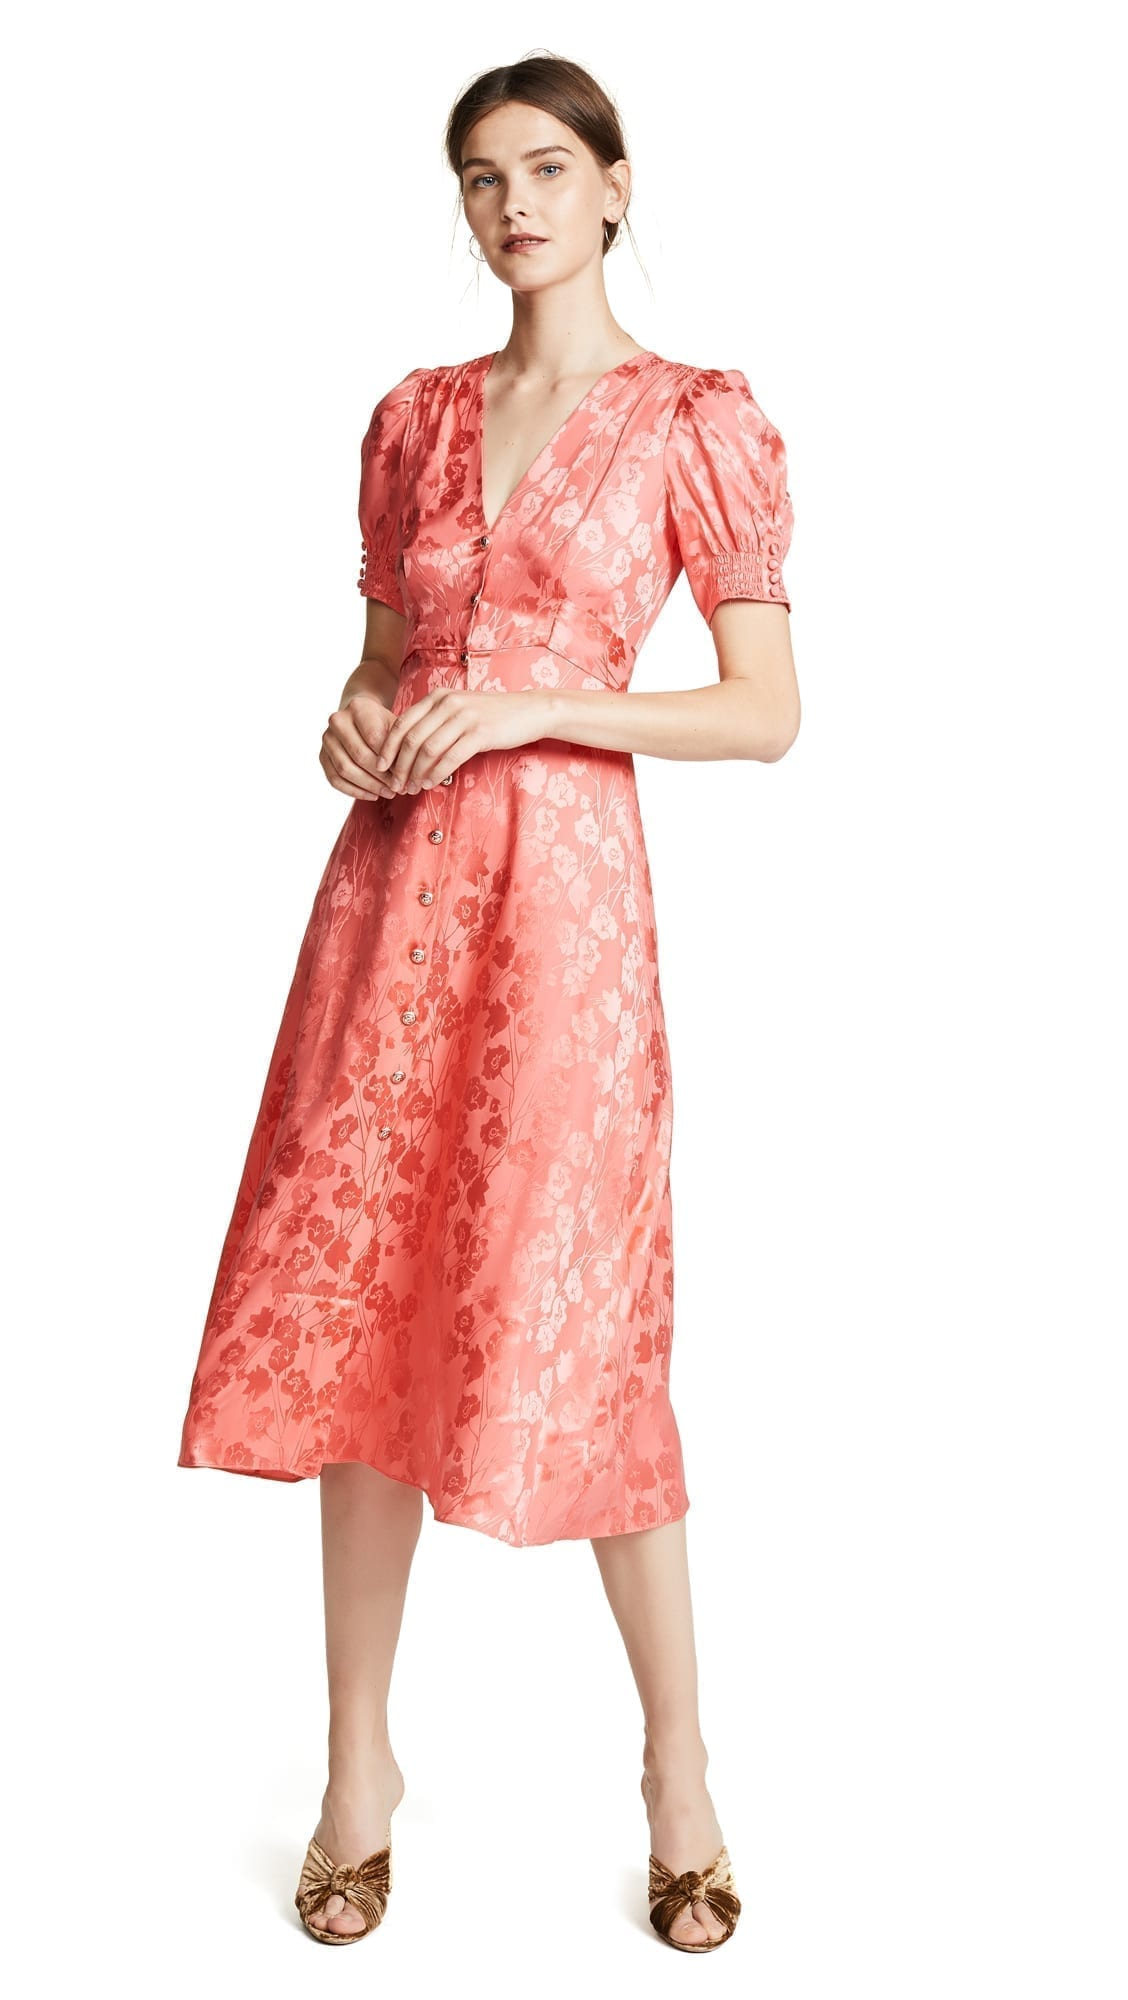 SALONI Lea Bright Coral Dress